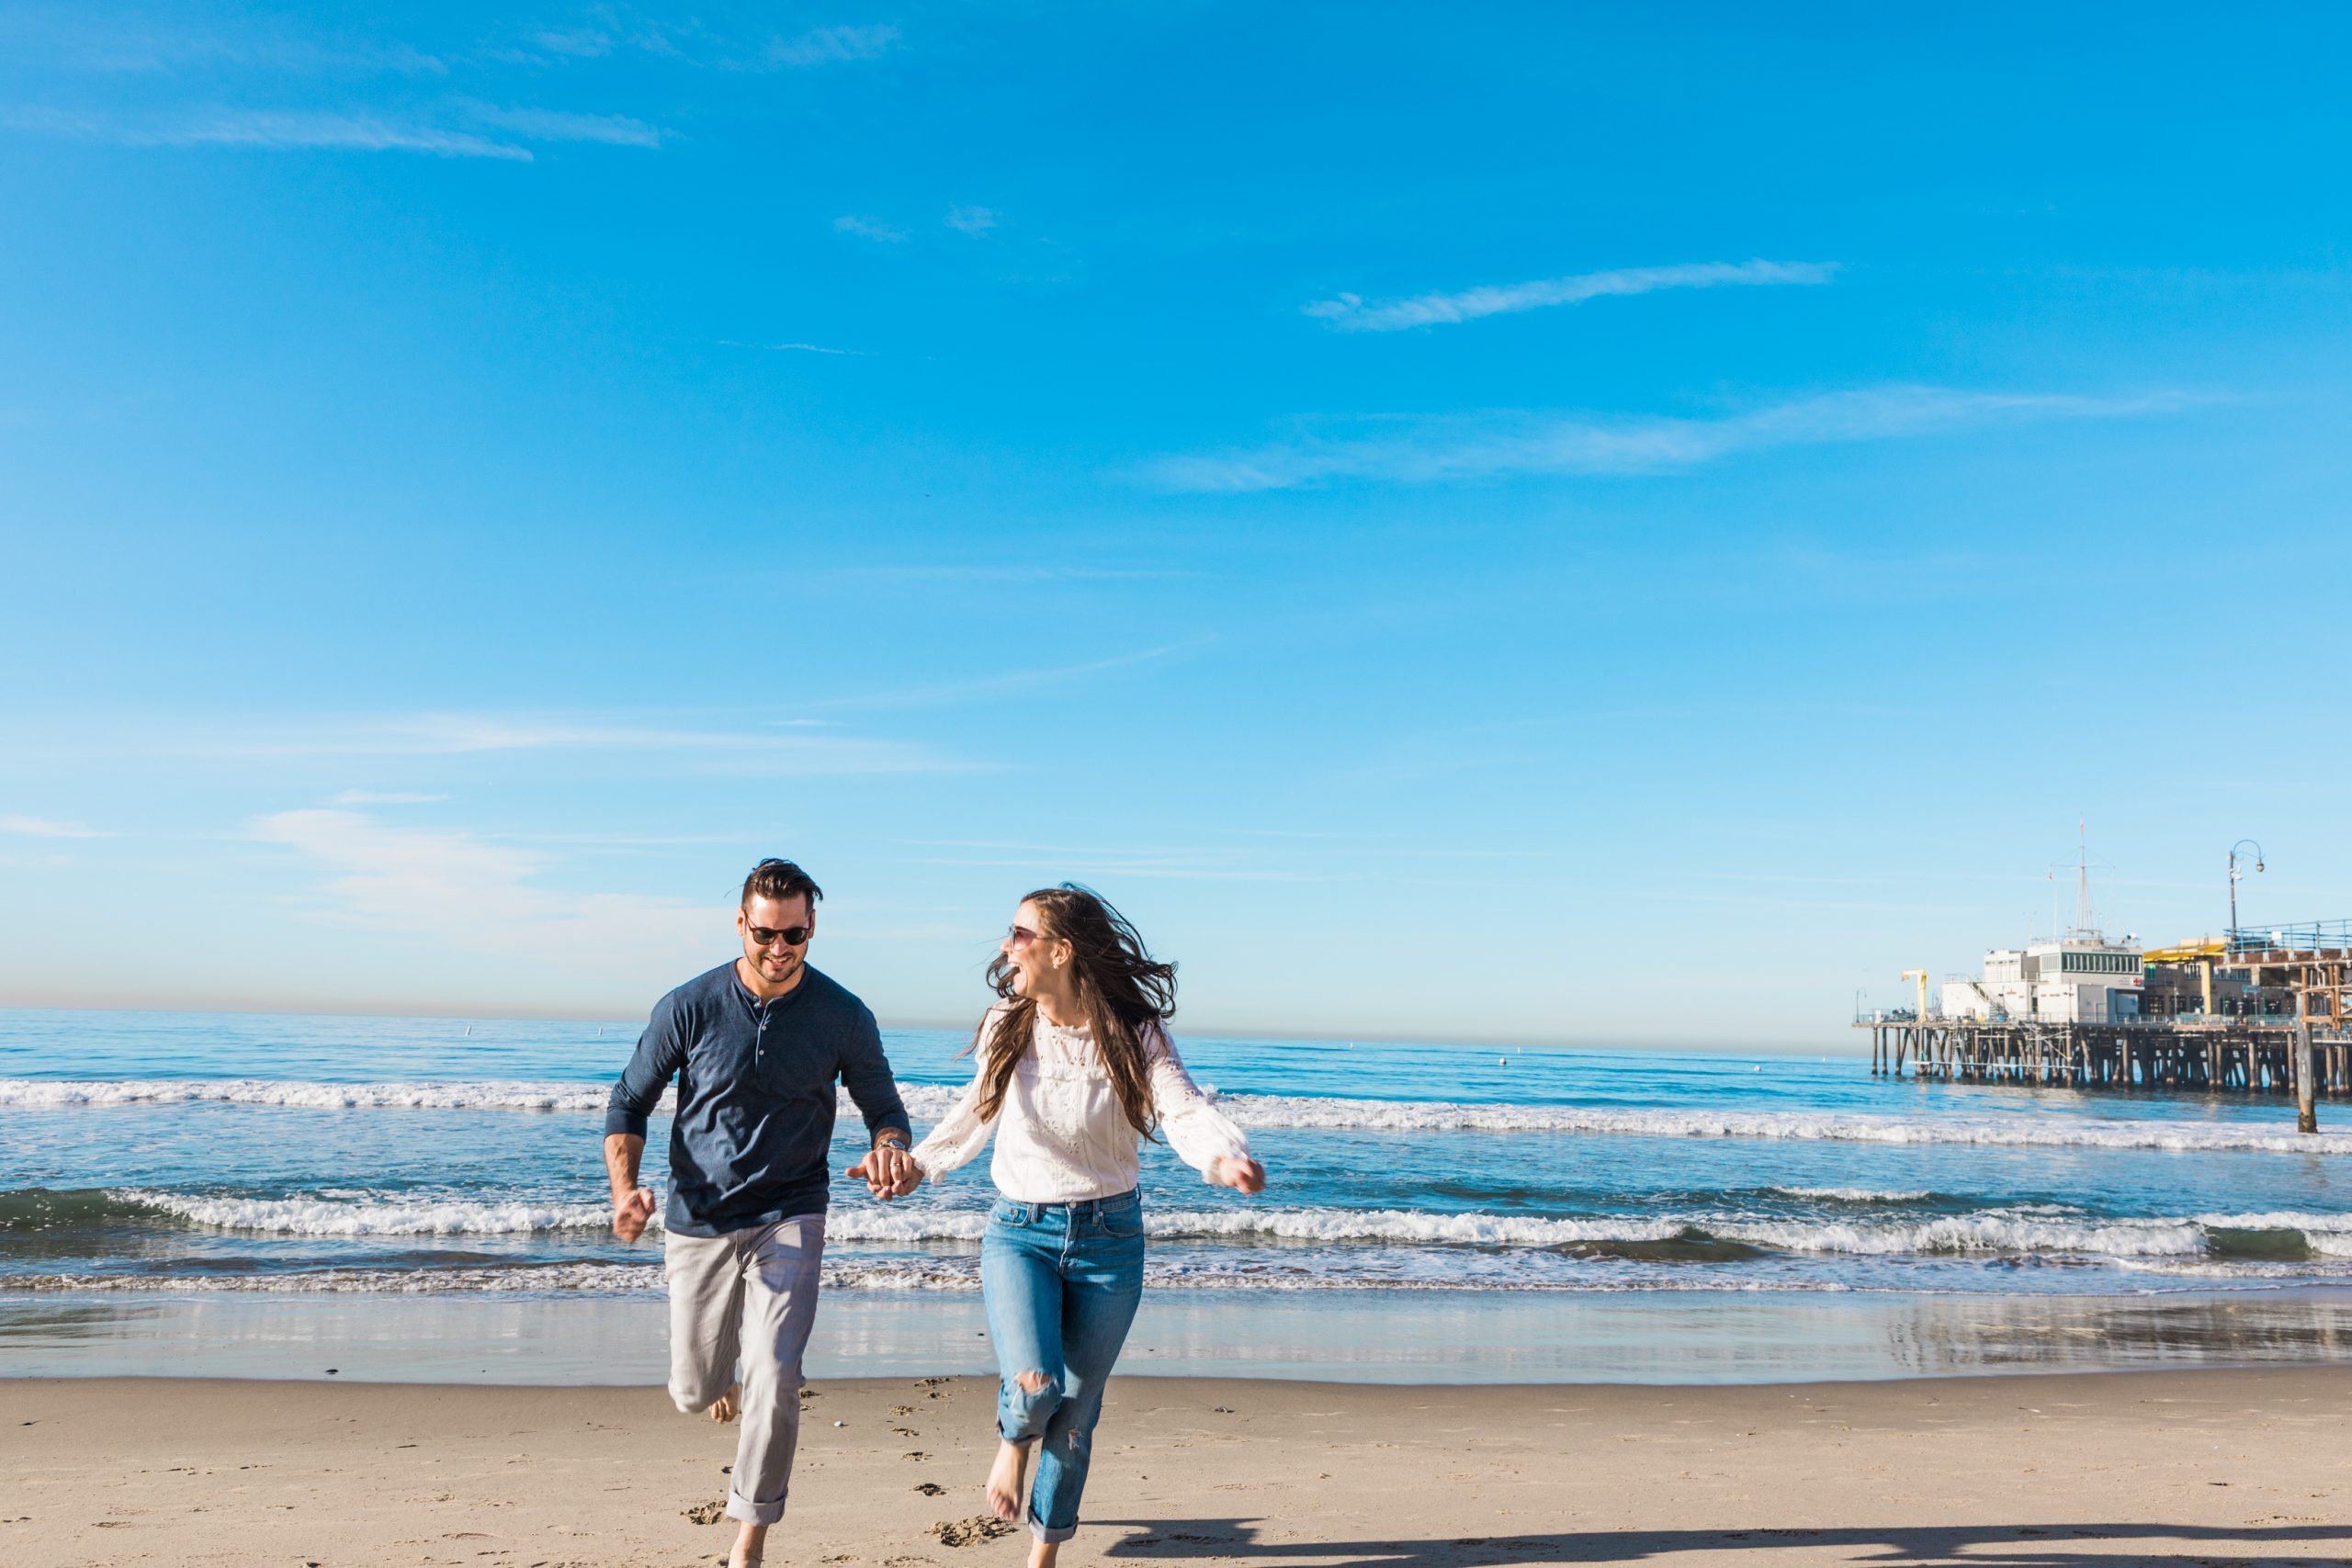 Man and Woman running on Santa Monica Beach away from the ocean